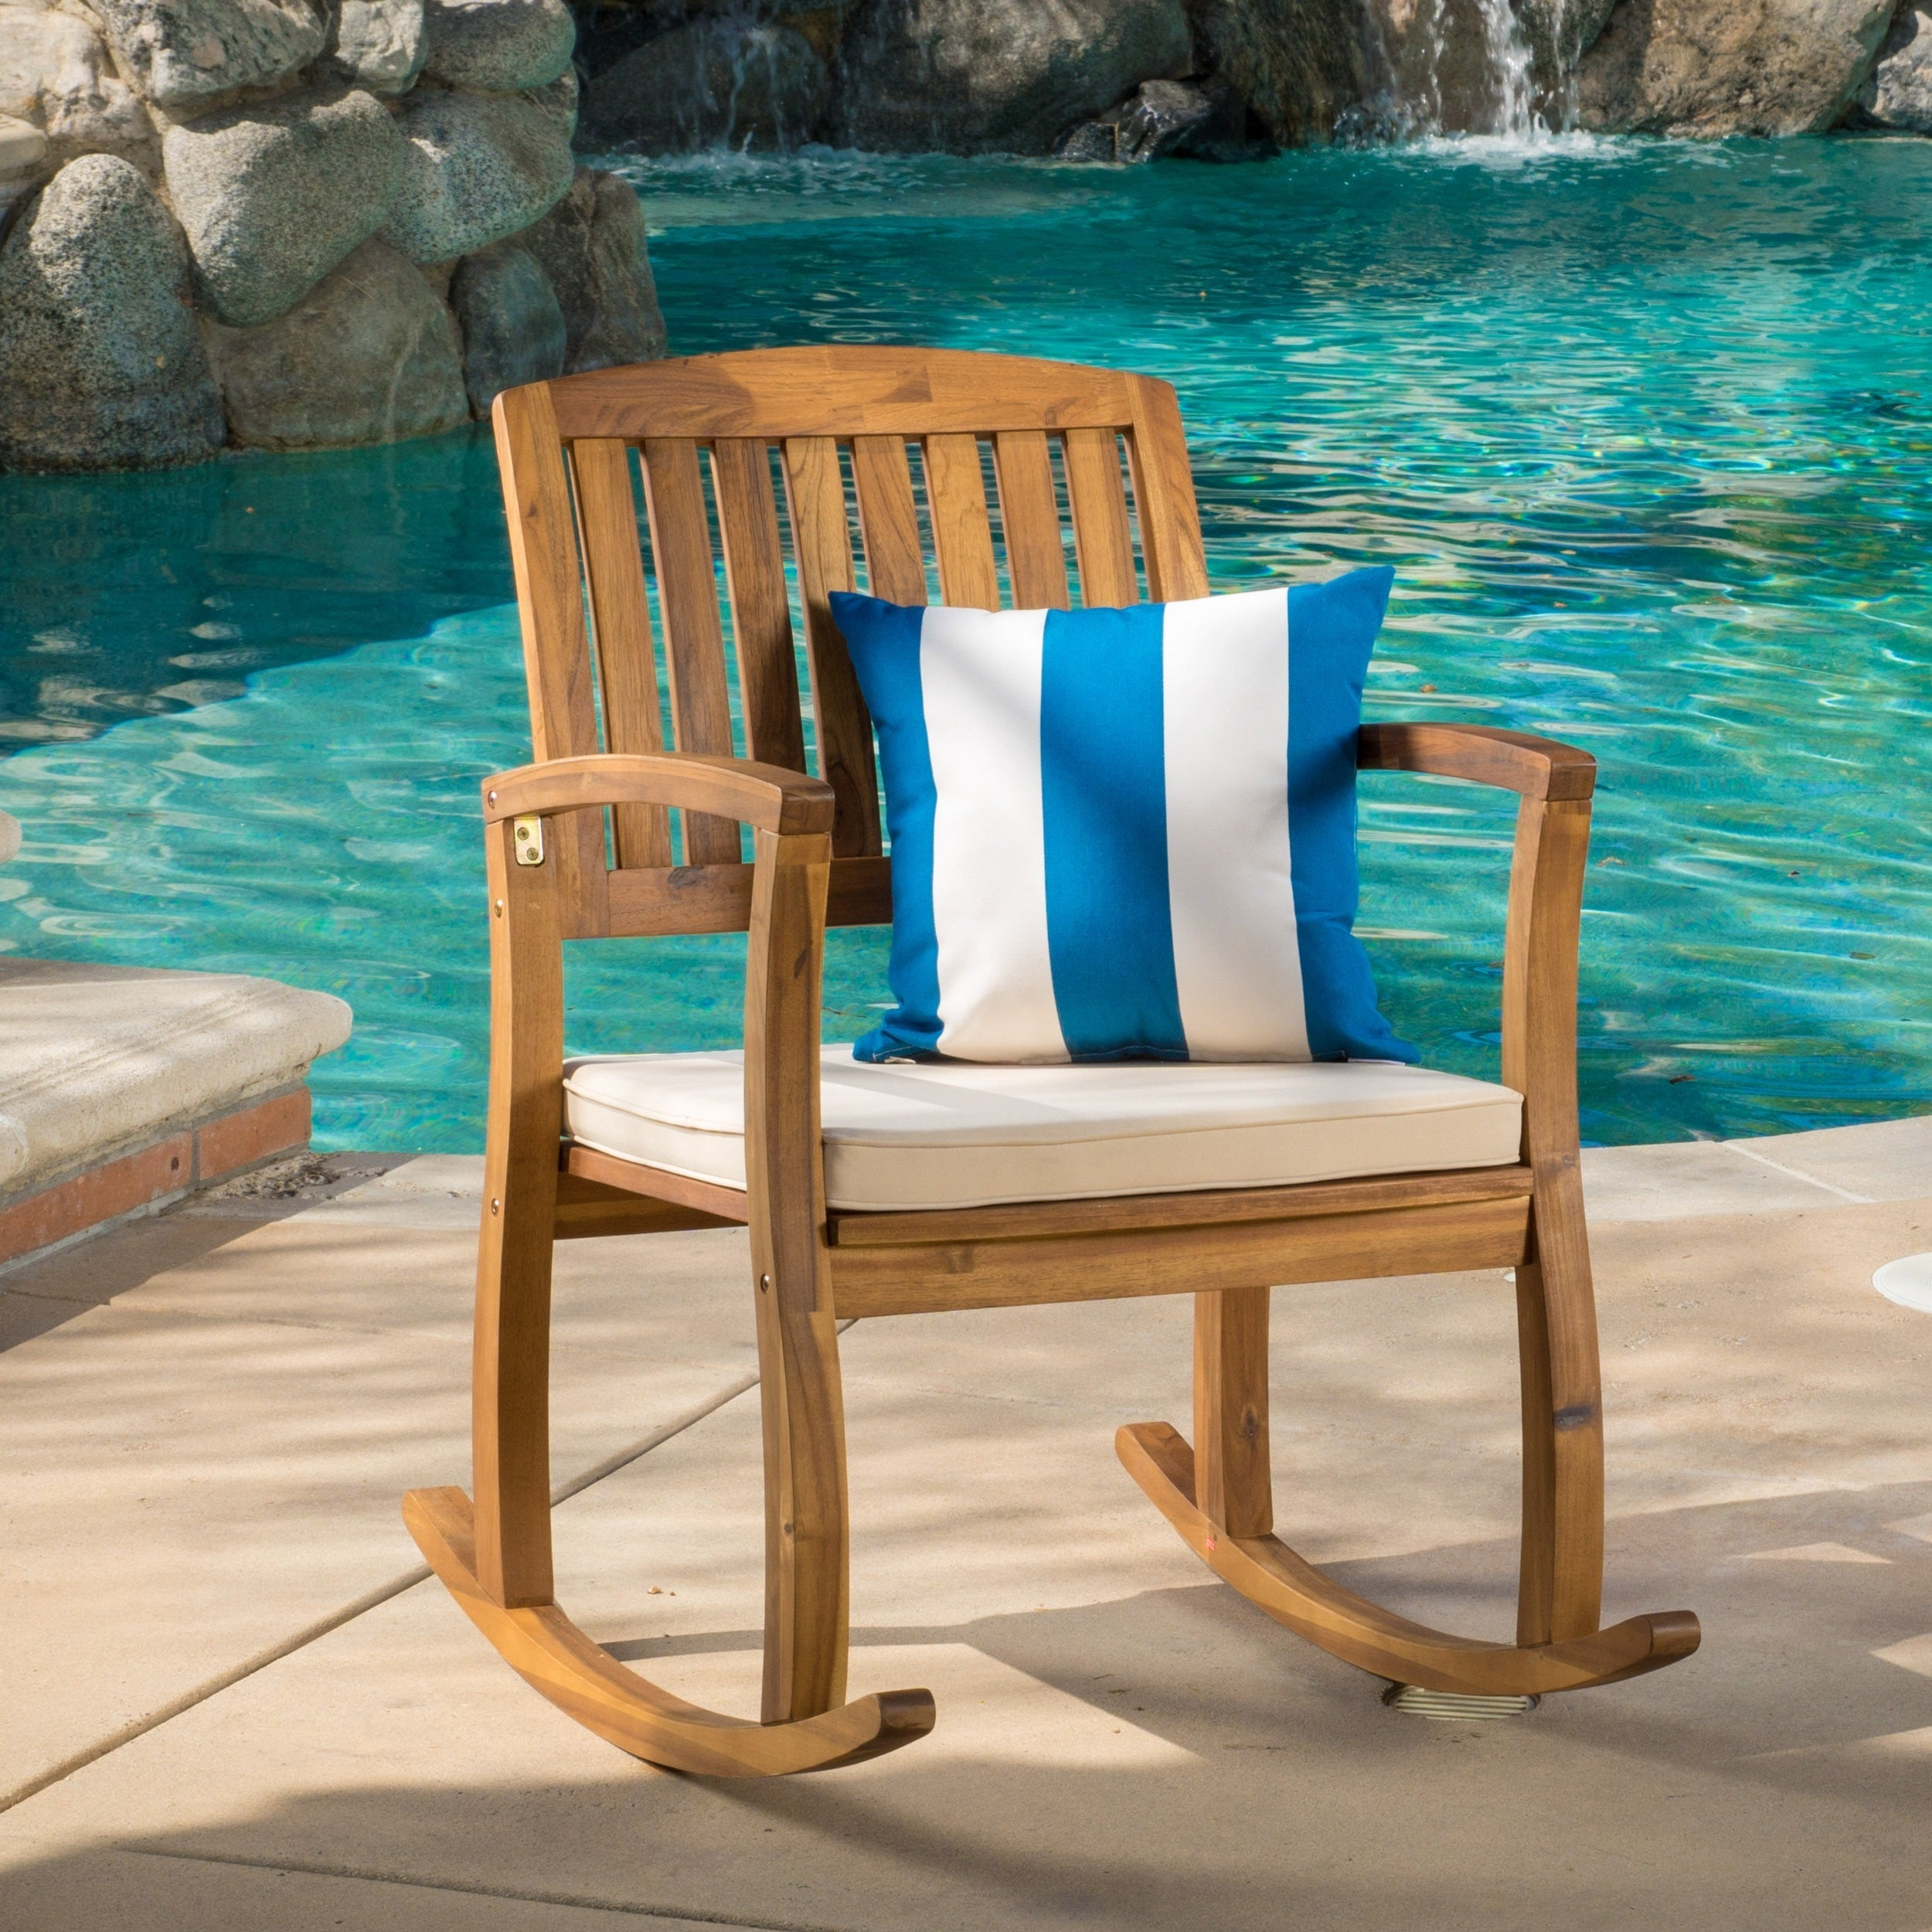 Lucca Outdoor Acacia Wood Rocking Chair with Cushion by C...